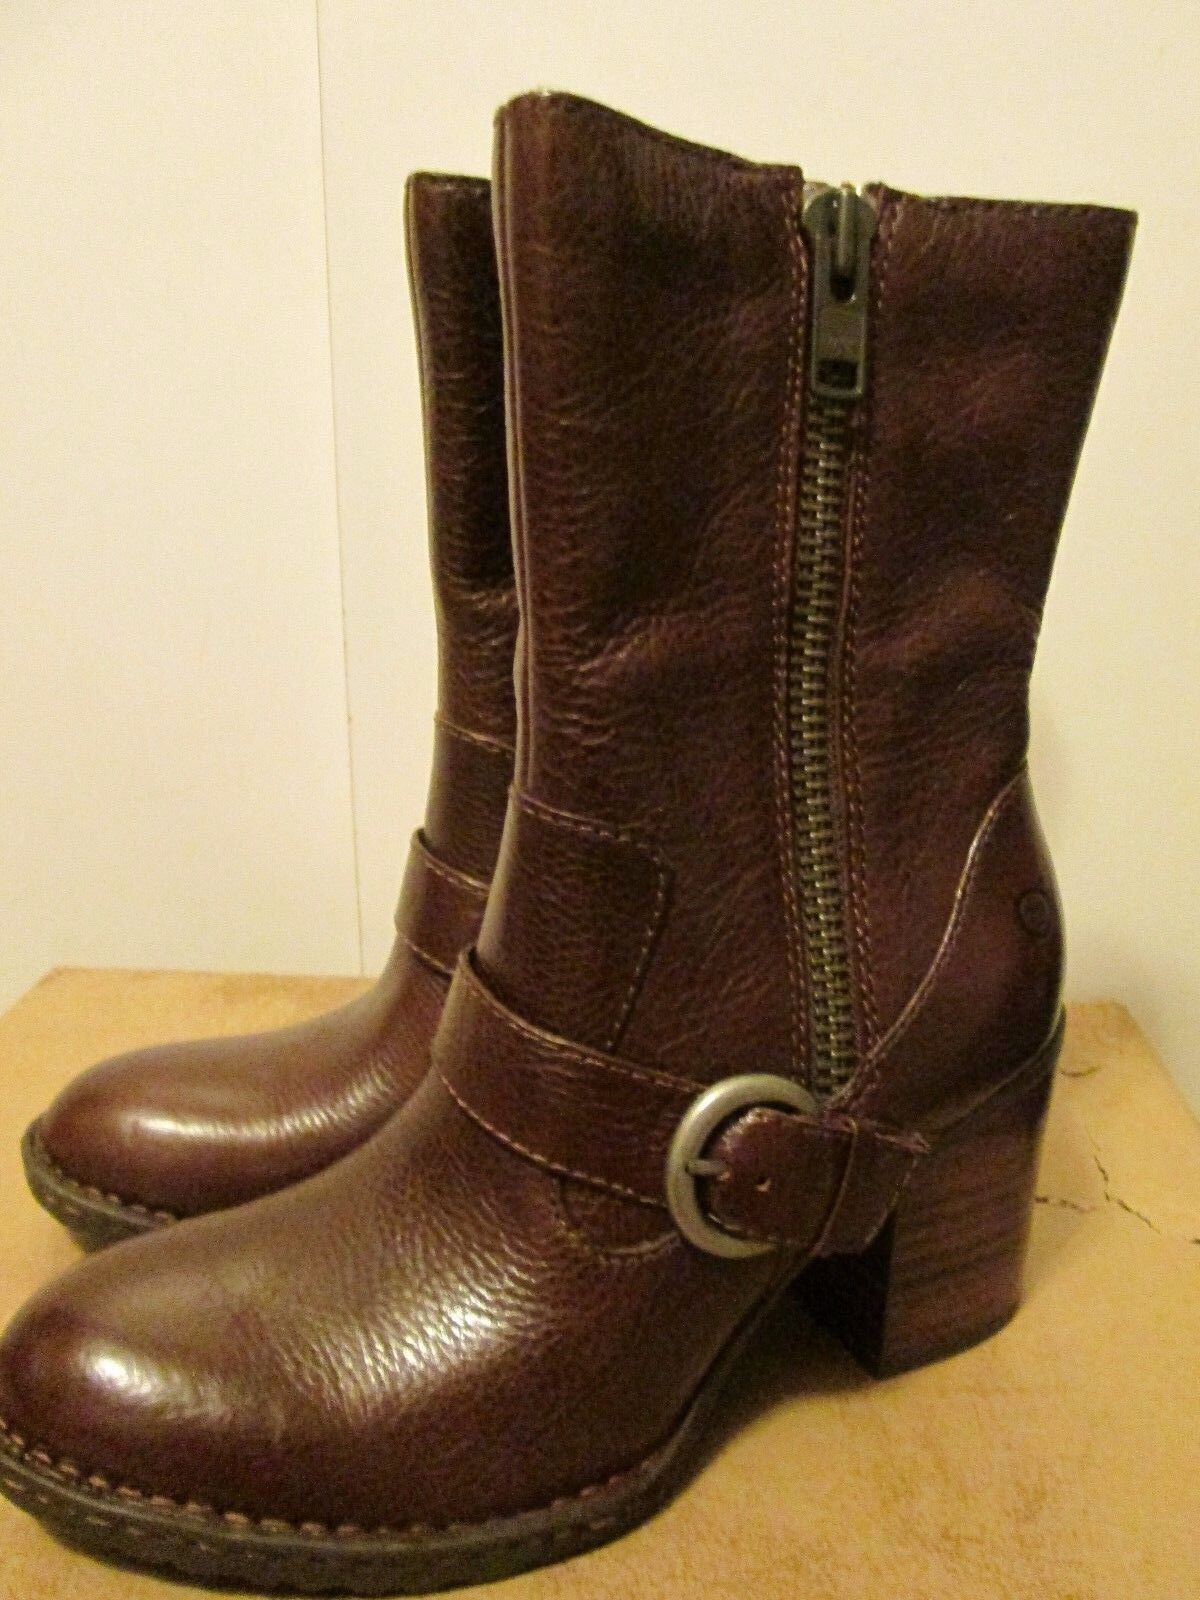 Born Camryn Cinnamon Brown Leather Shoes High 8 Heel Ankle Boots Size 8 High NWB dcbcbb